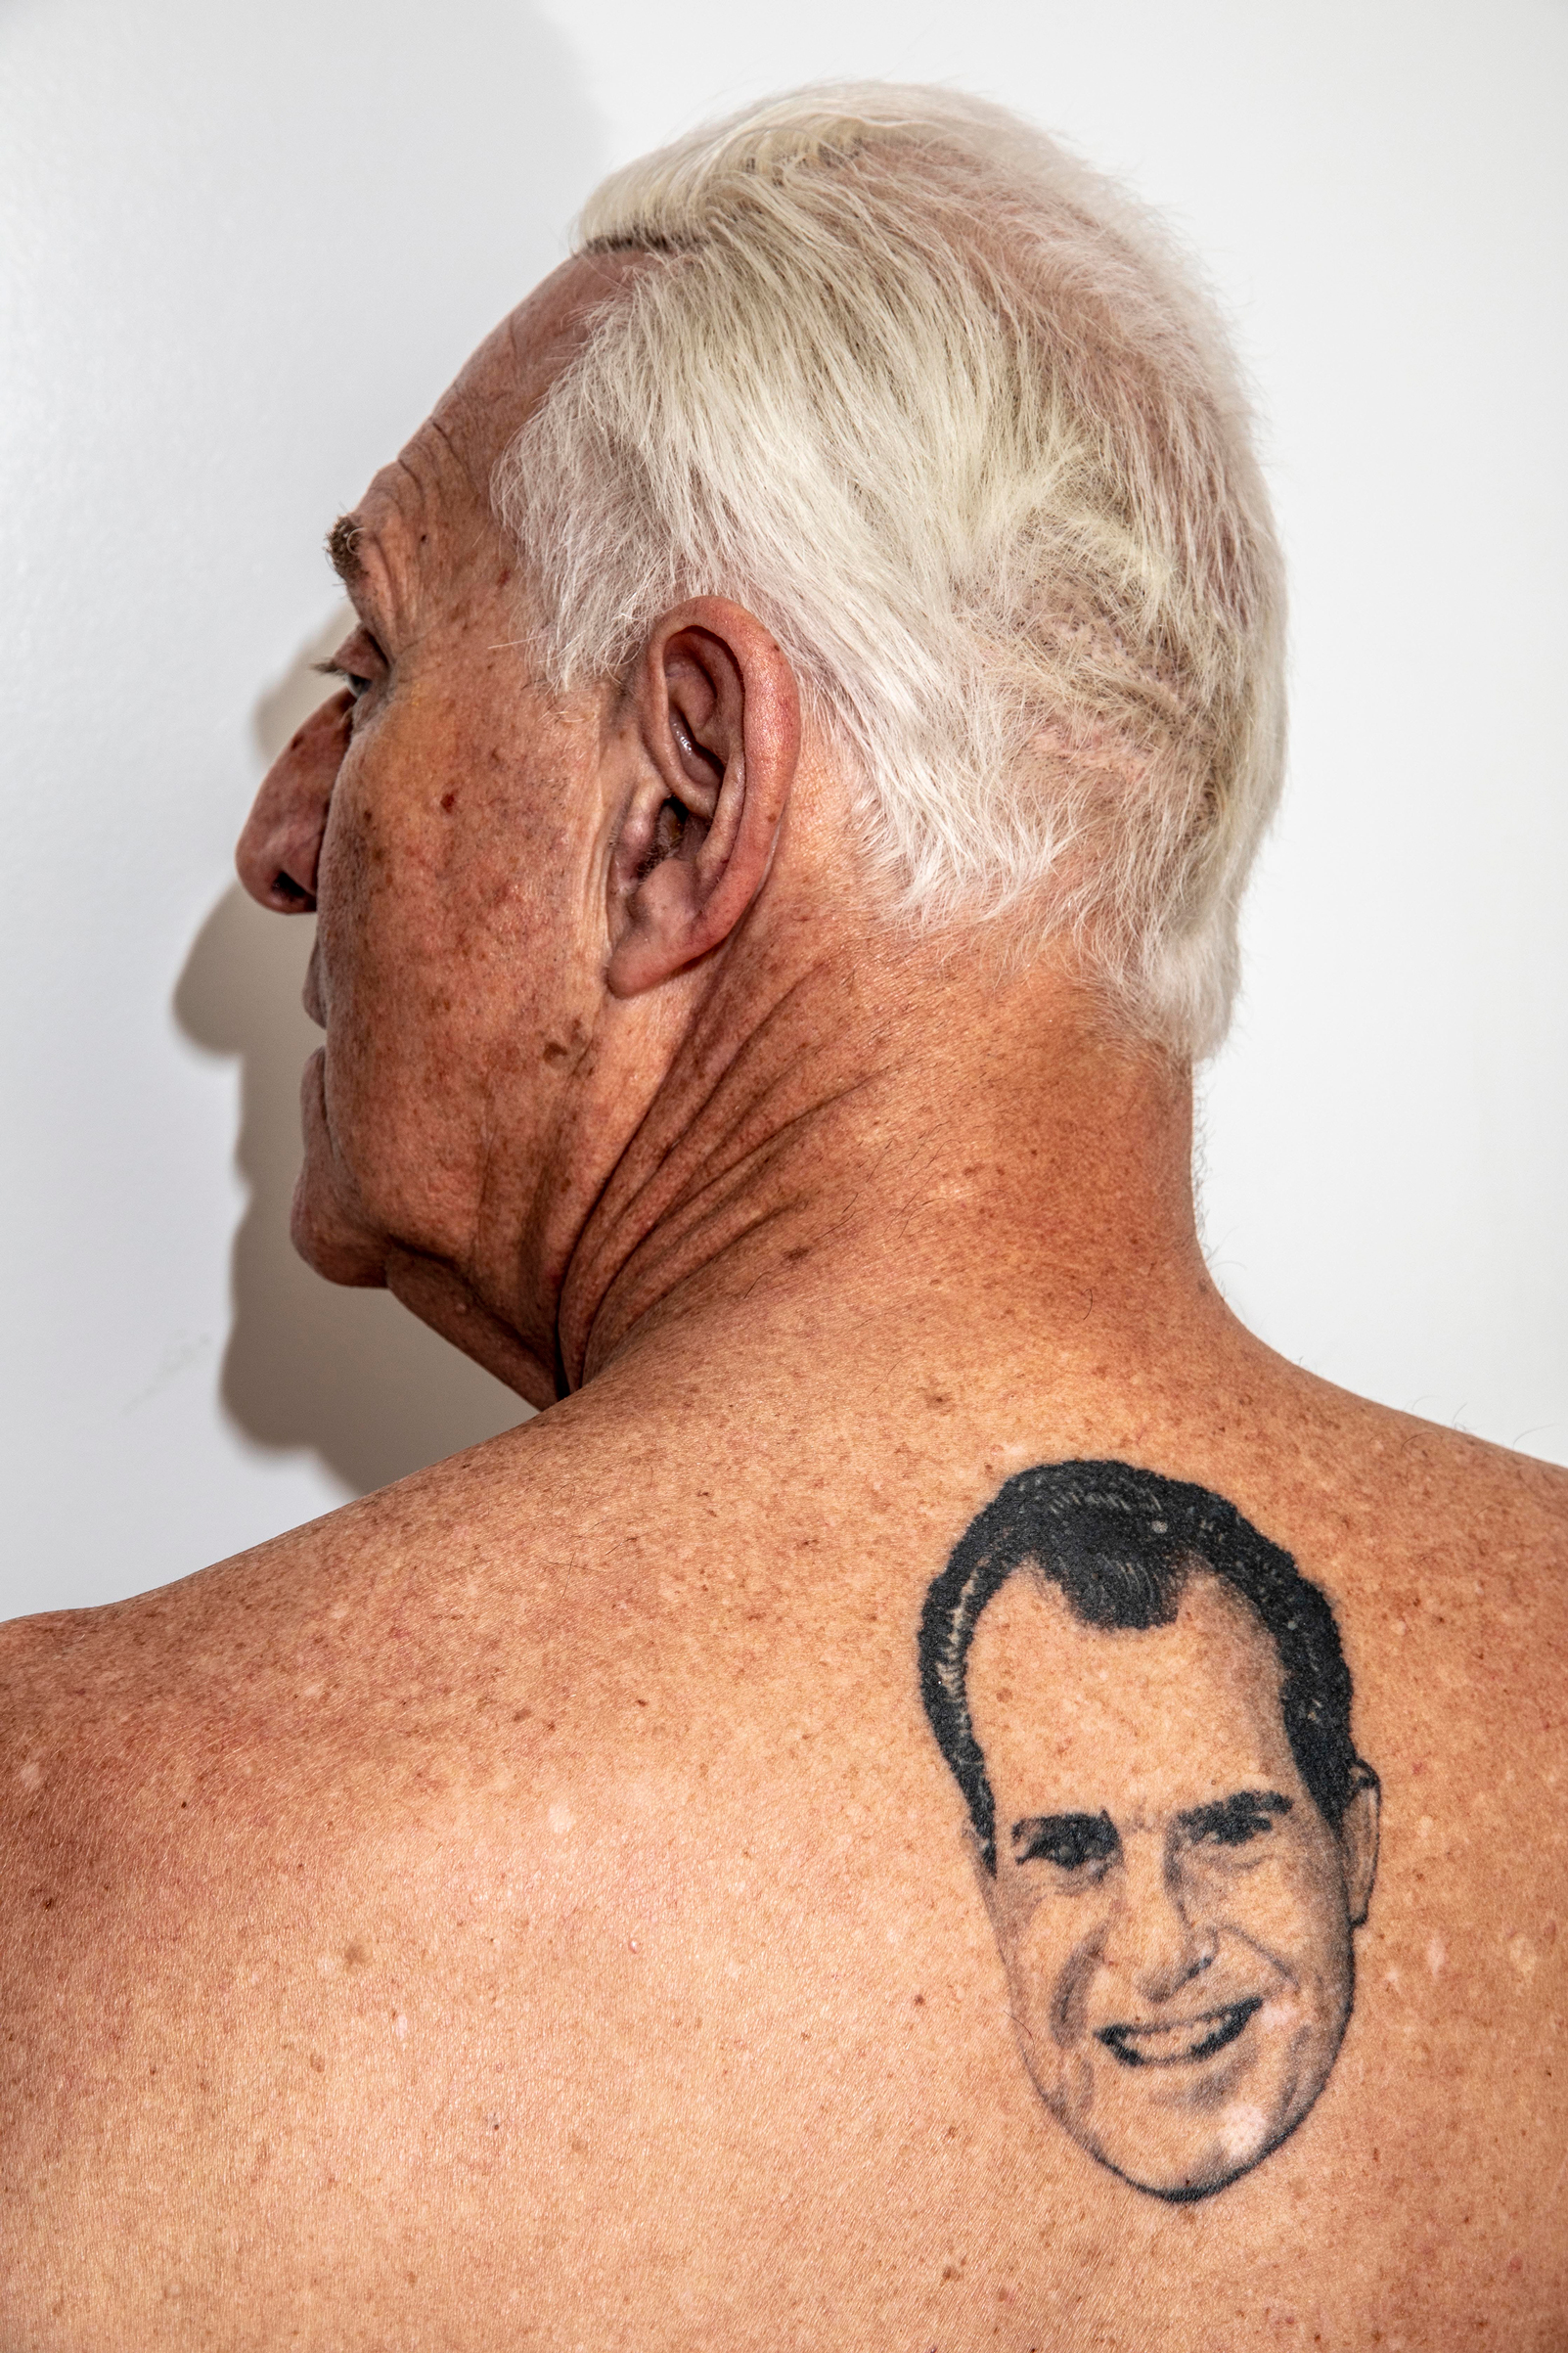 Stone shows off his Richard Nixon tattoo at his apartment in New York in June 2018.